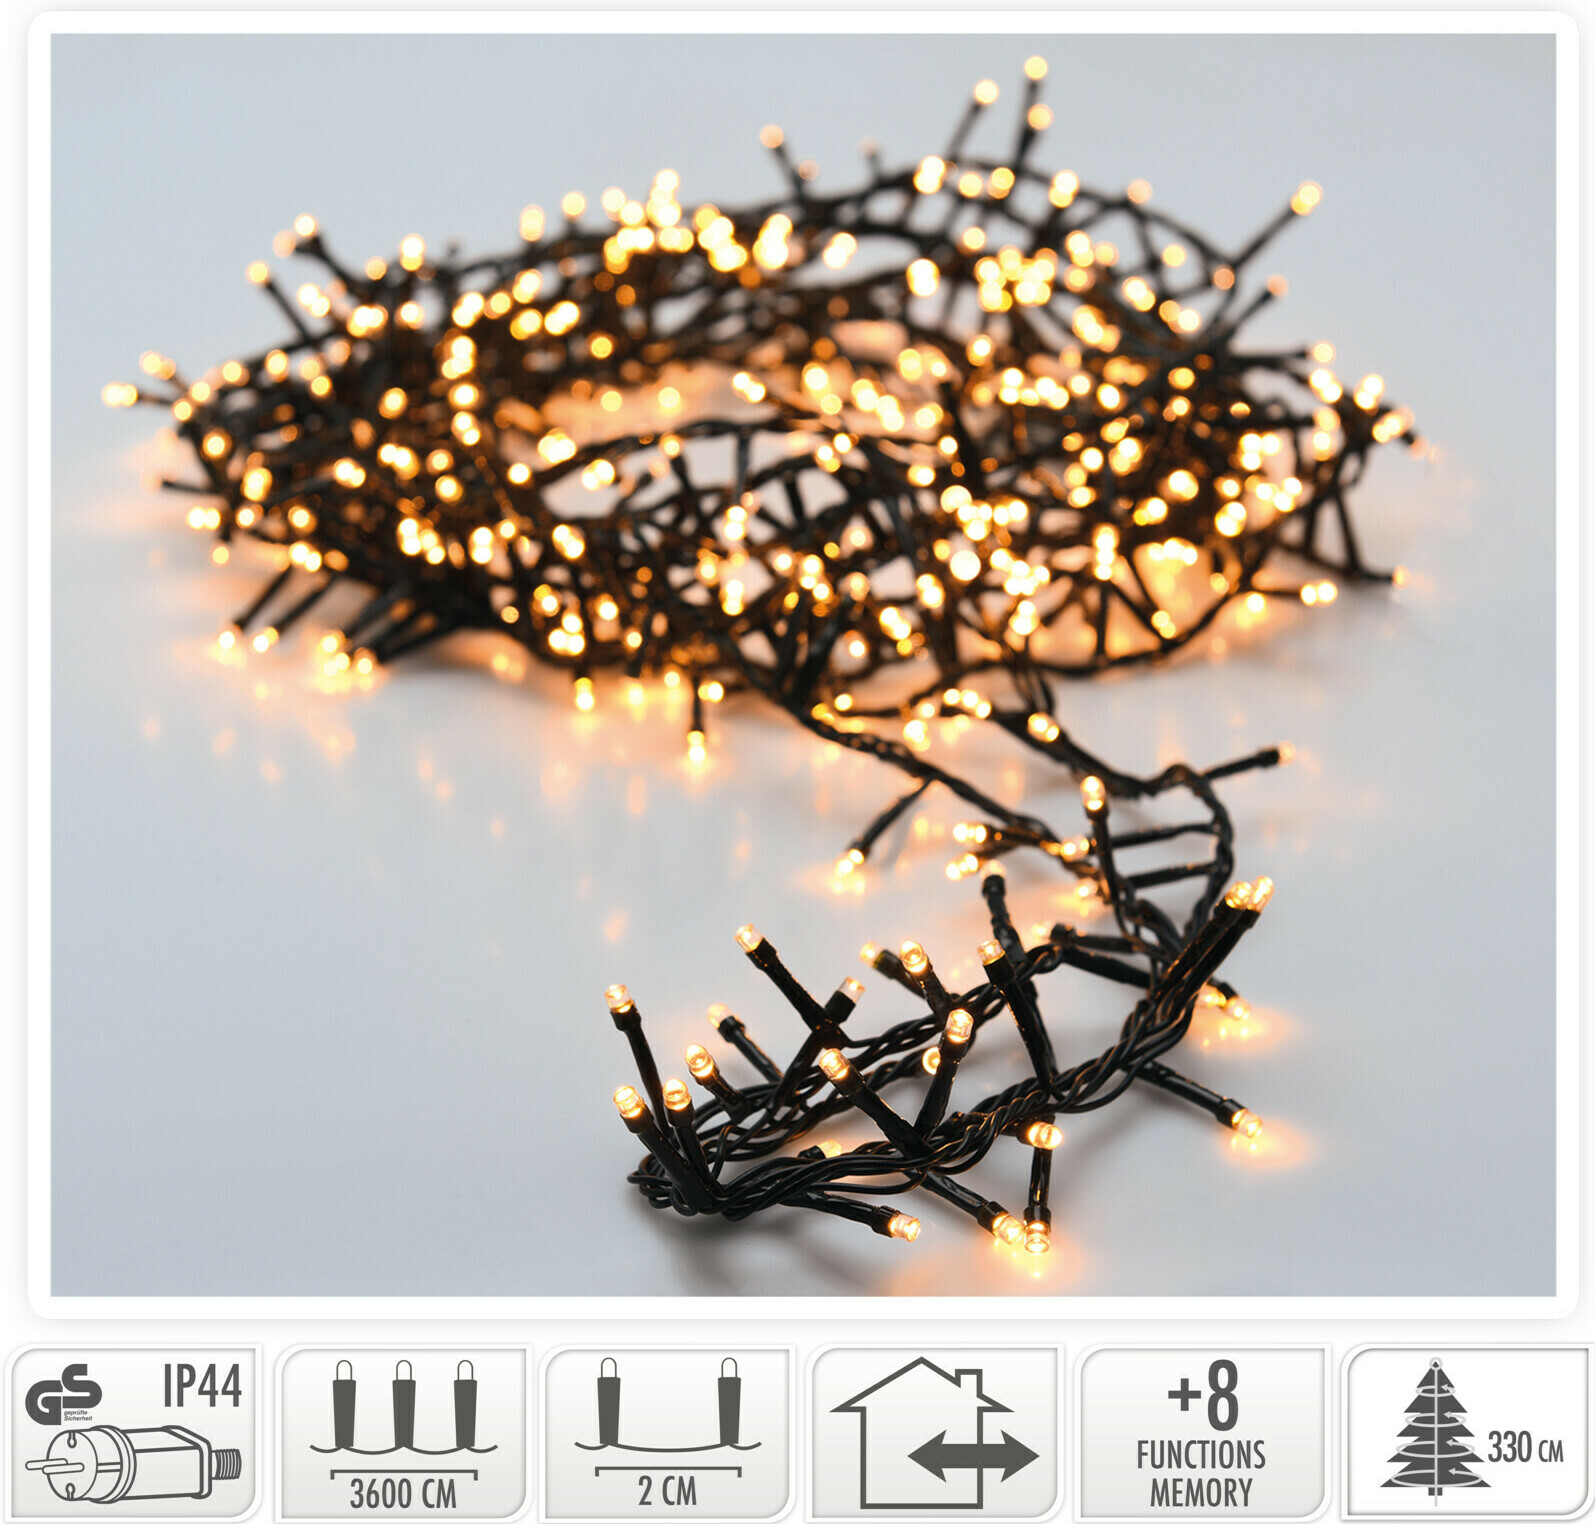 Valetti Microcluster 1800LED Extra kerstboomverlichting